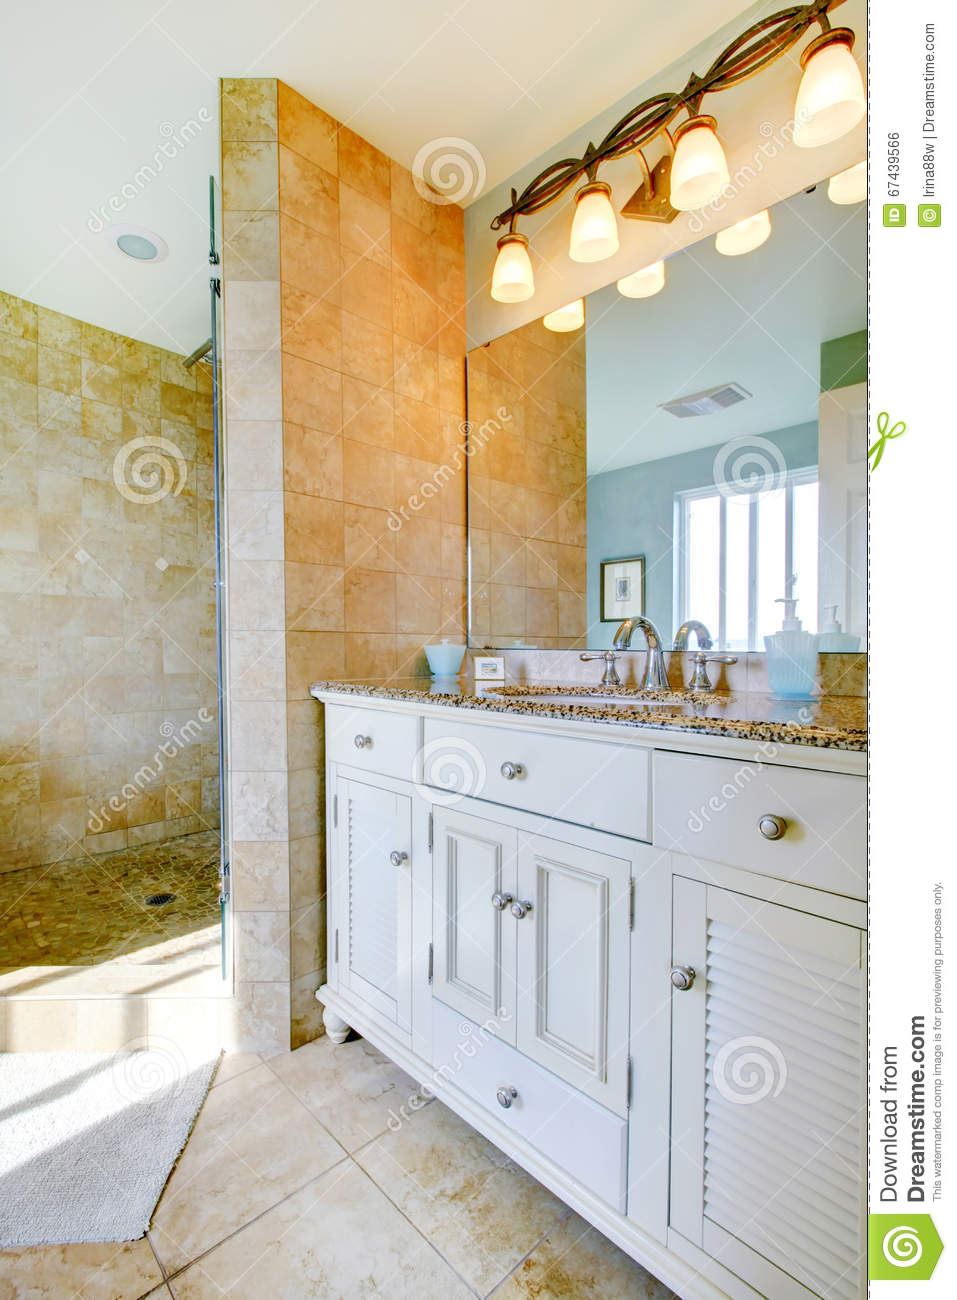 Luxury Bathroom With White Cabinets Marble Counters And Large Stock Photo Image Of Renovated Modern 67439566